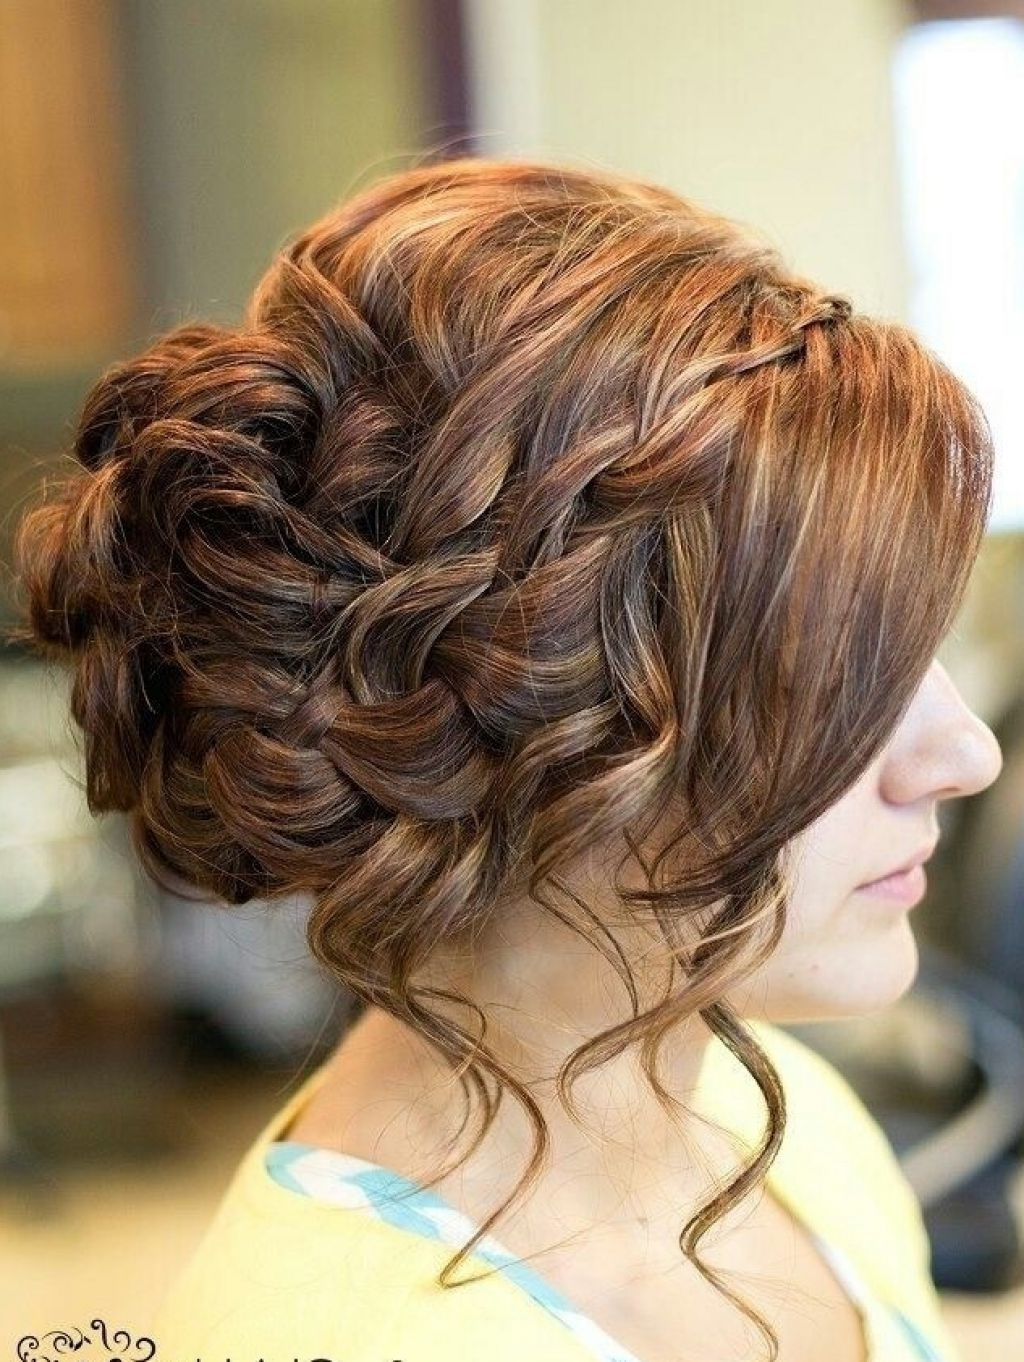 10 Stunning Prom Hairstyles For Short Hair To Try This Season With Fancy Hairstyles Updo Hairstyles (View 2 of 25)